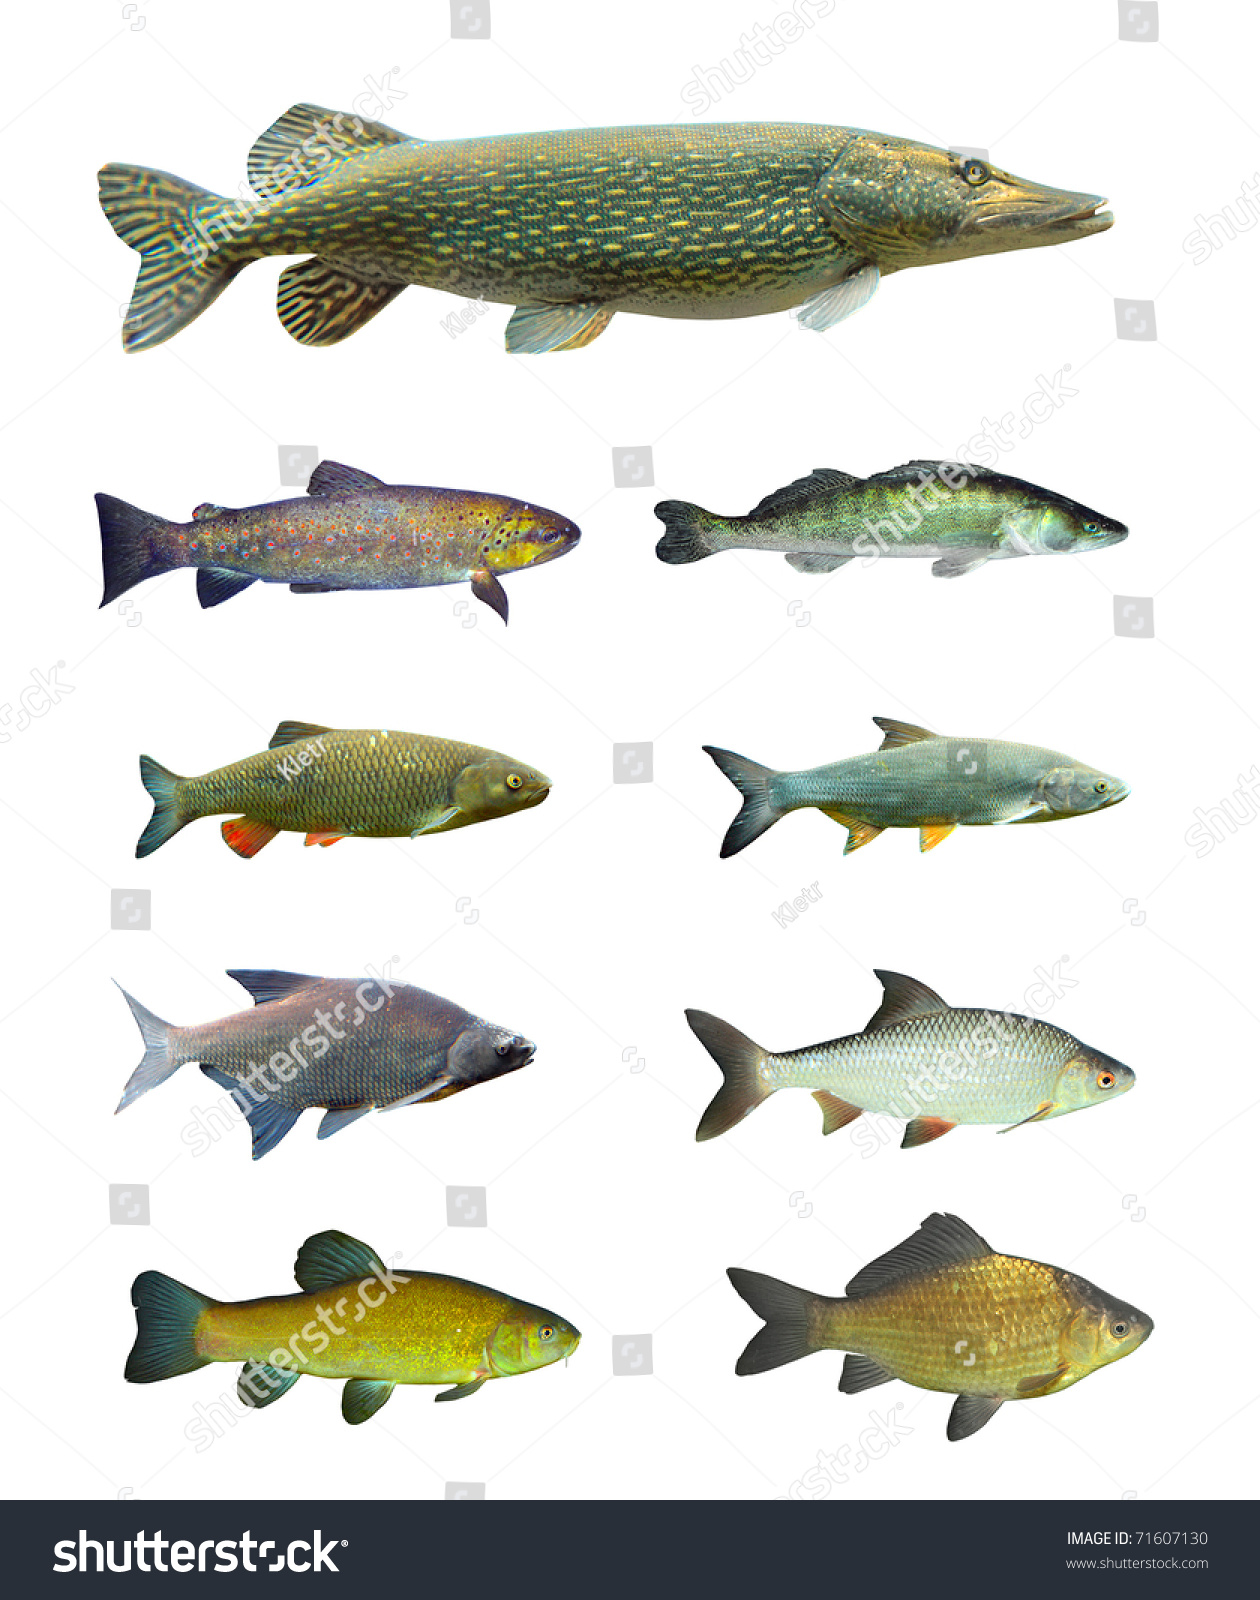 Freshwater fish clipart - Great Collection Of Freshwater Fish On White Background